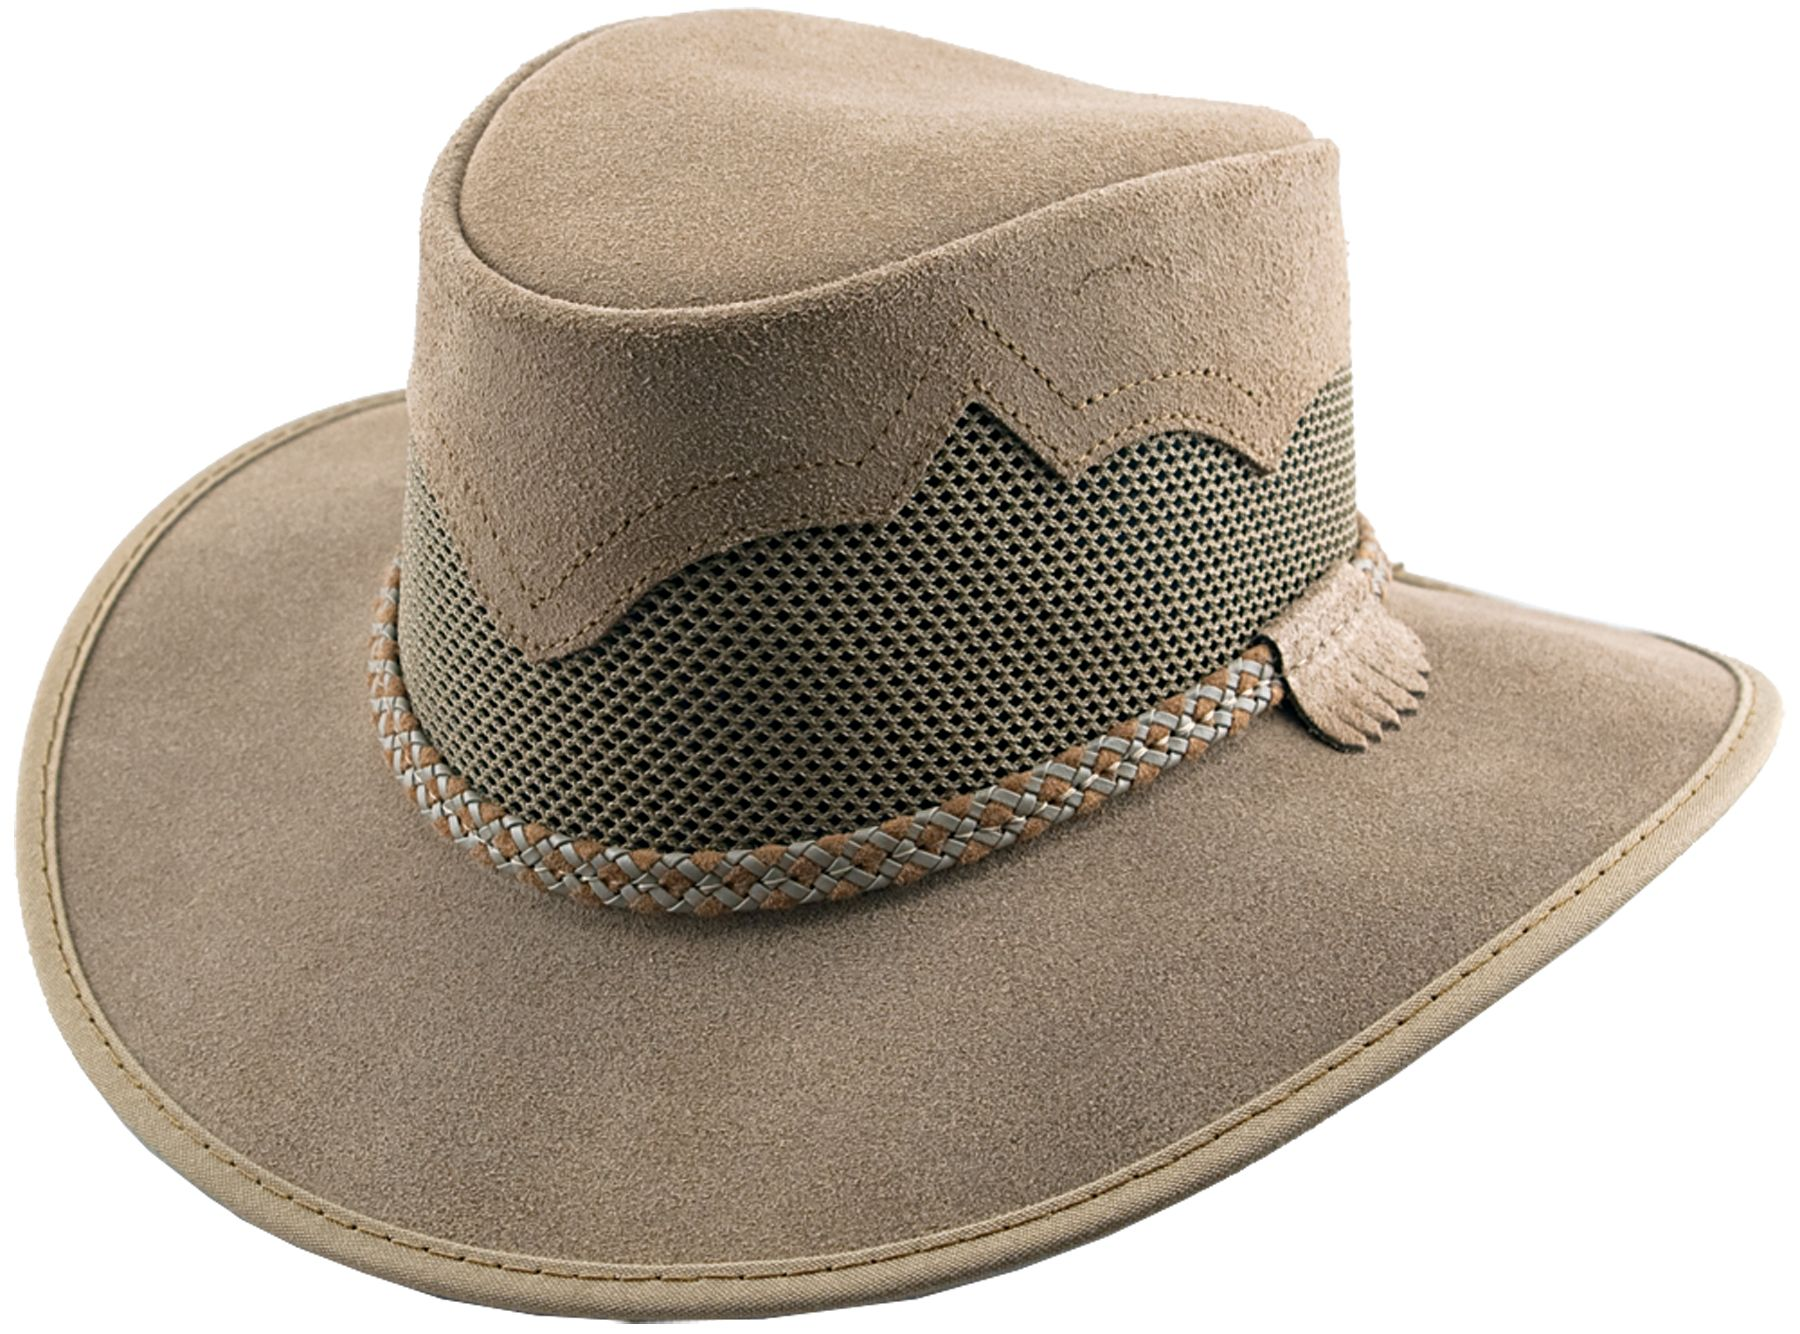 64b58aee1 The Sirocco is our original Enhanced Mesh and Leather Hat. The ...